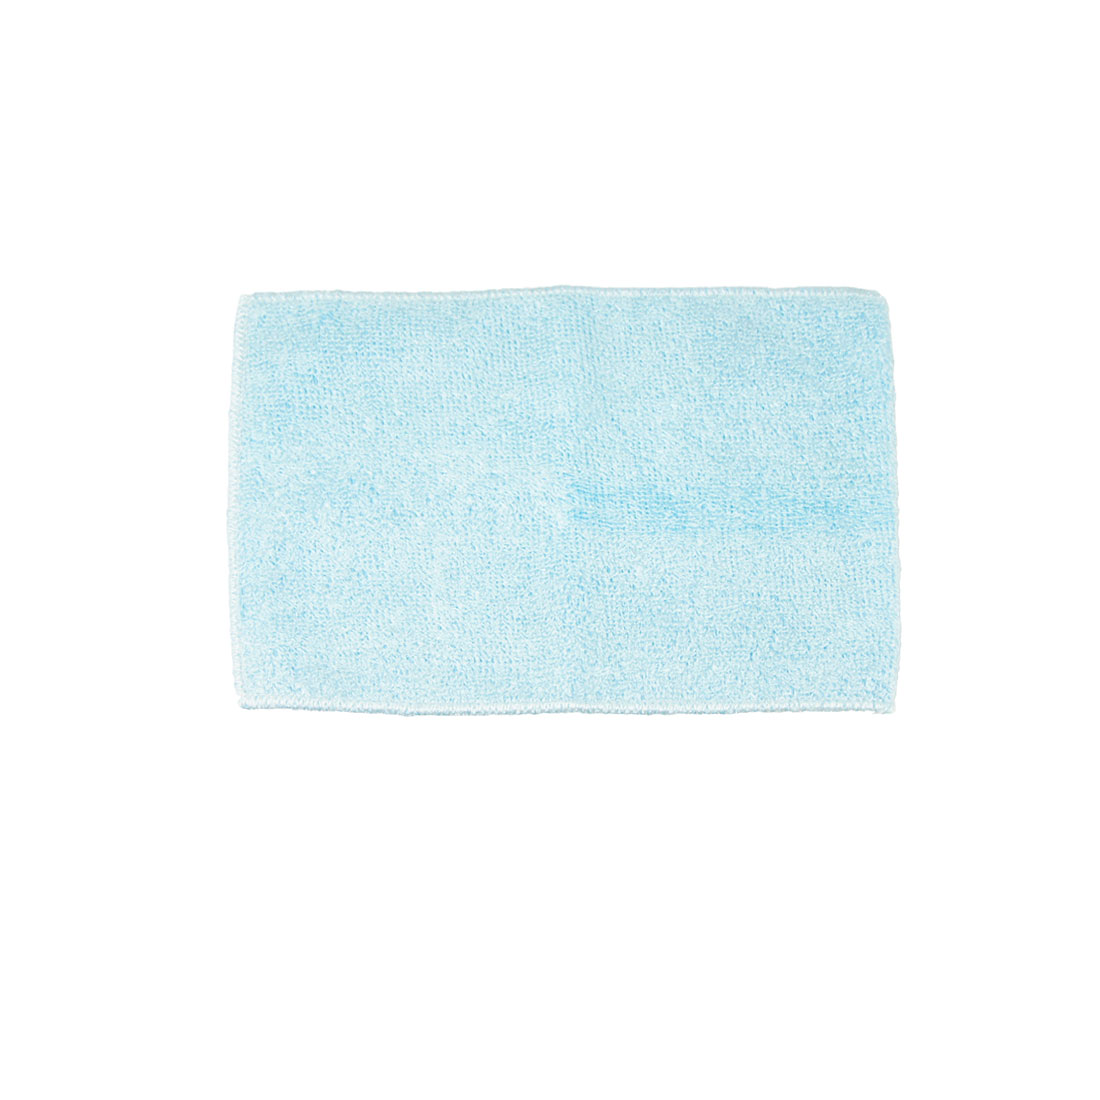 "8.8"" x 7"" Bamboo Fiber Dish Wash Cloth Clean Towel Light Blue for Kitchen"